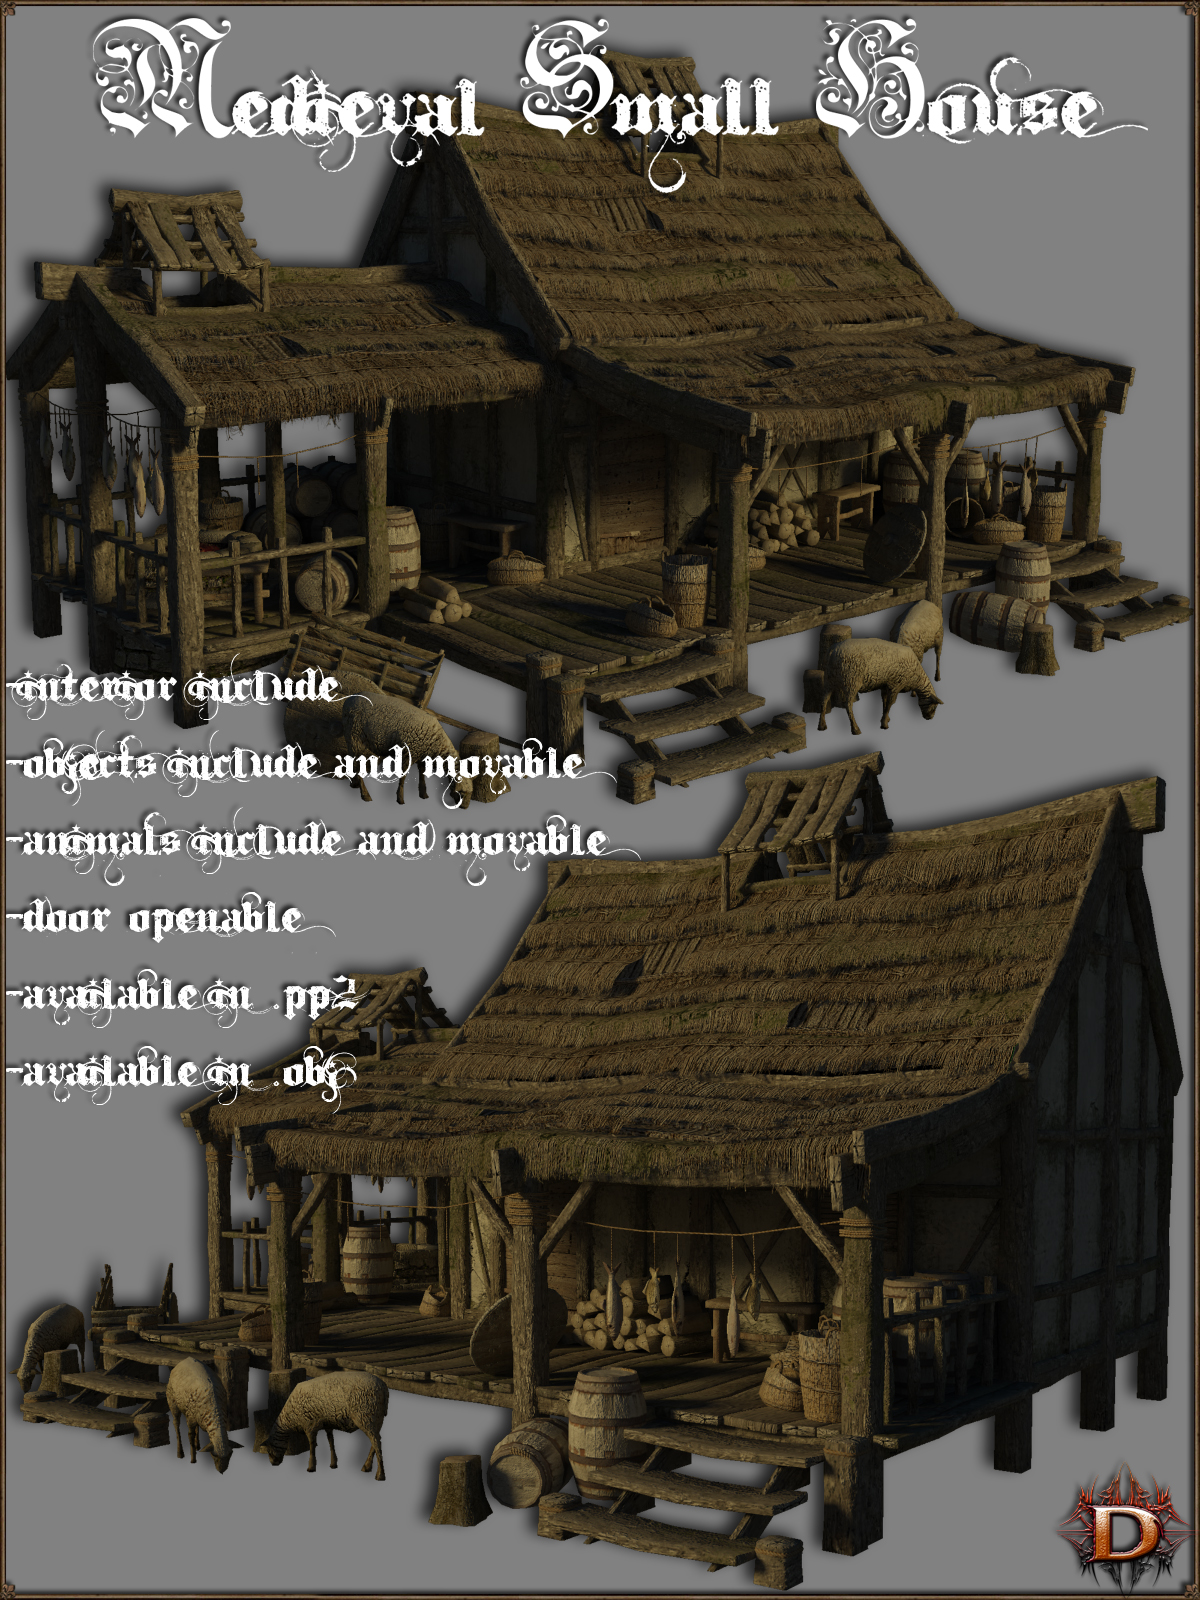 Medieval_Small_House - Extended License